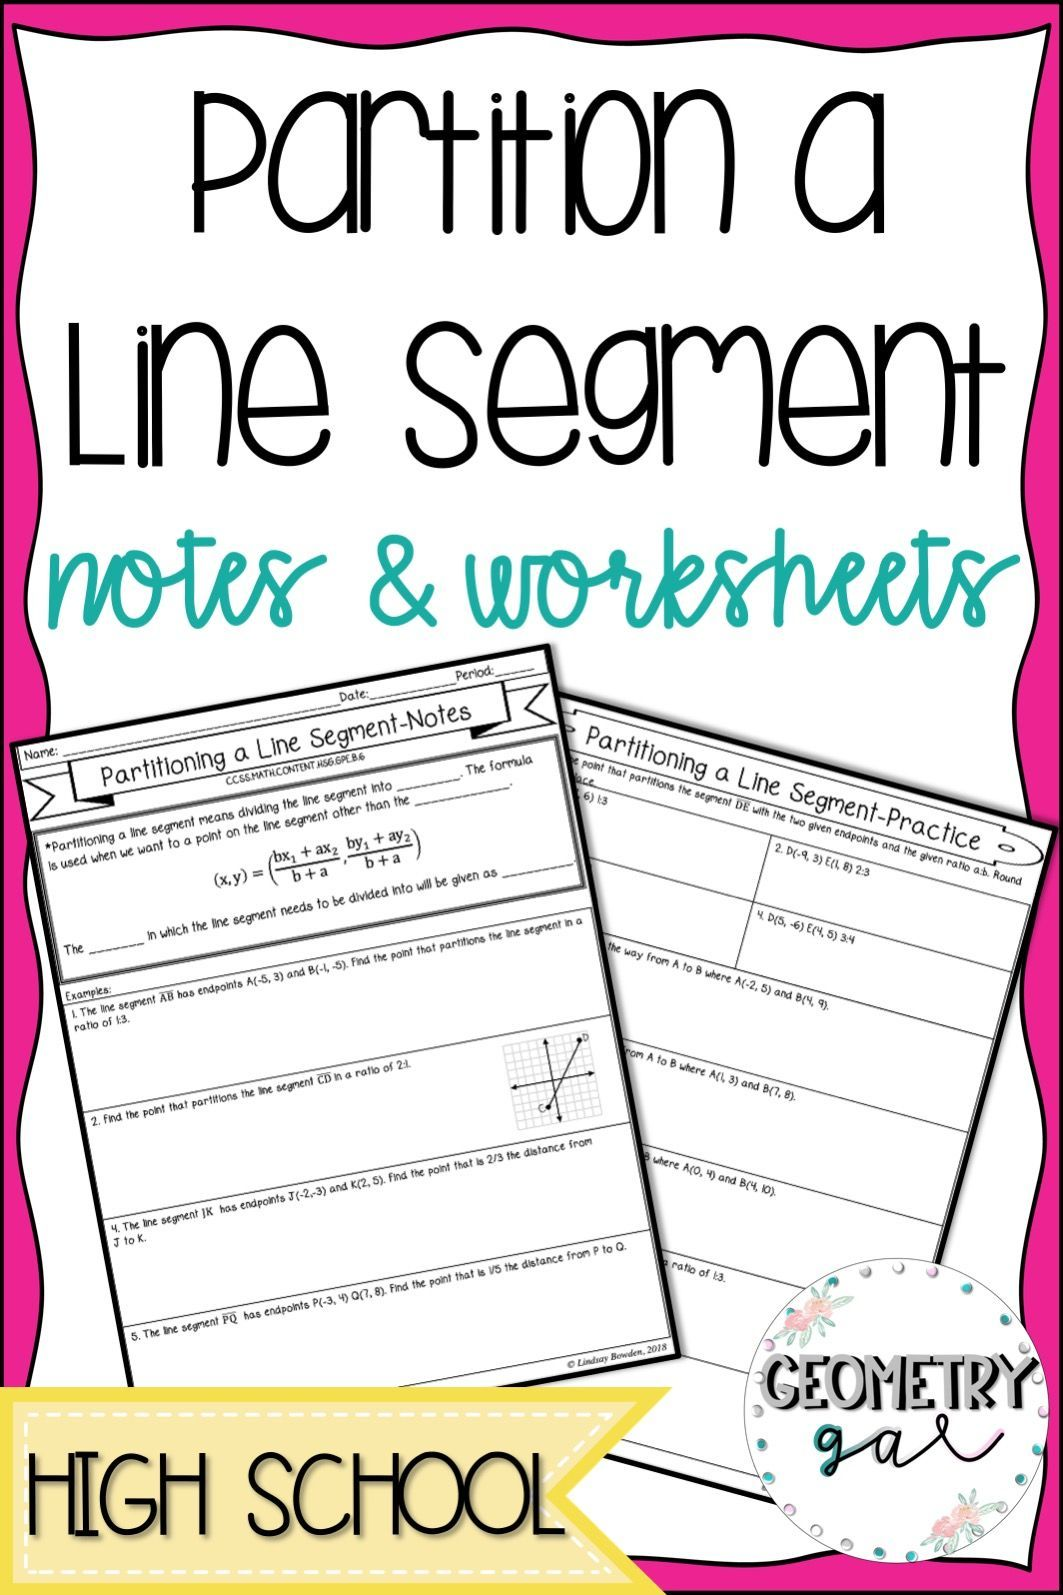 Partition A Line Segment Notes Worksheet Teach Students How To Partition A Line Into A Give High School Geometry Notes Geometry Lessons Geometry High School